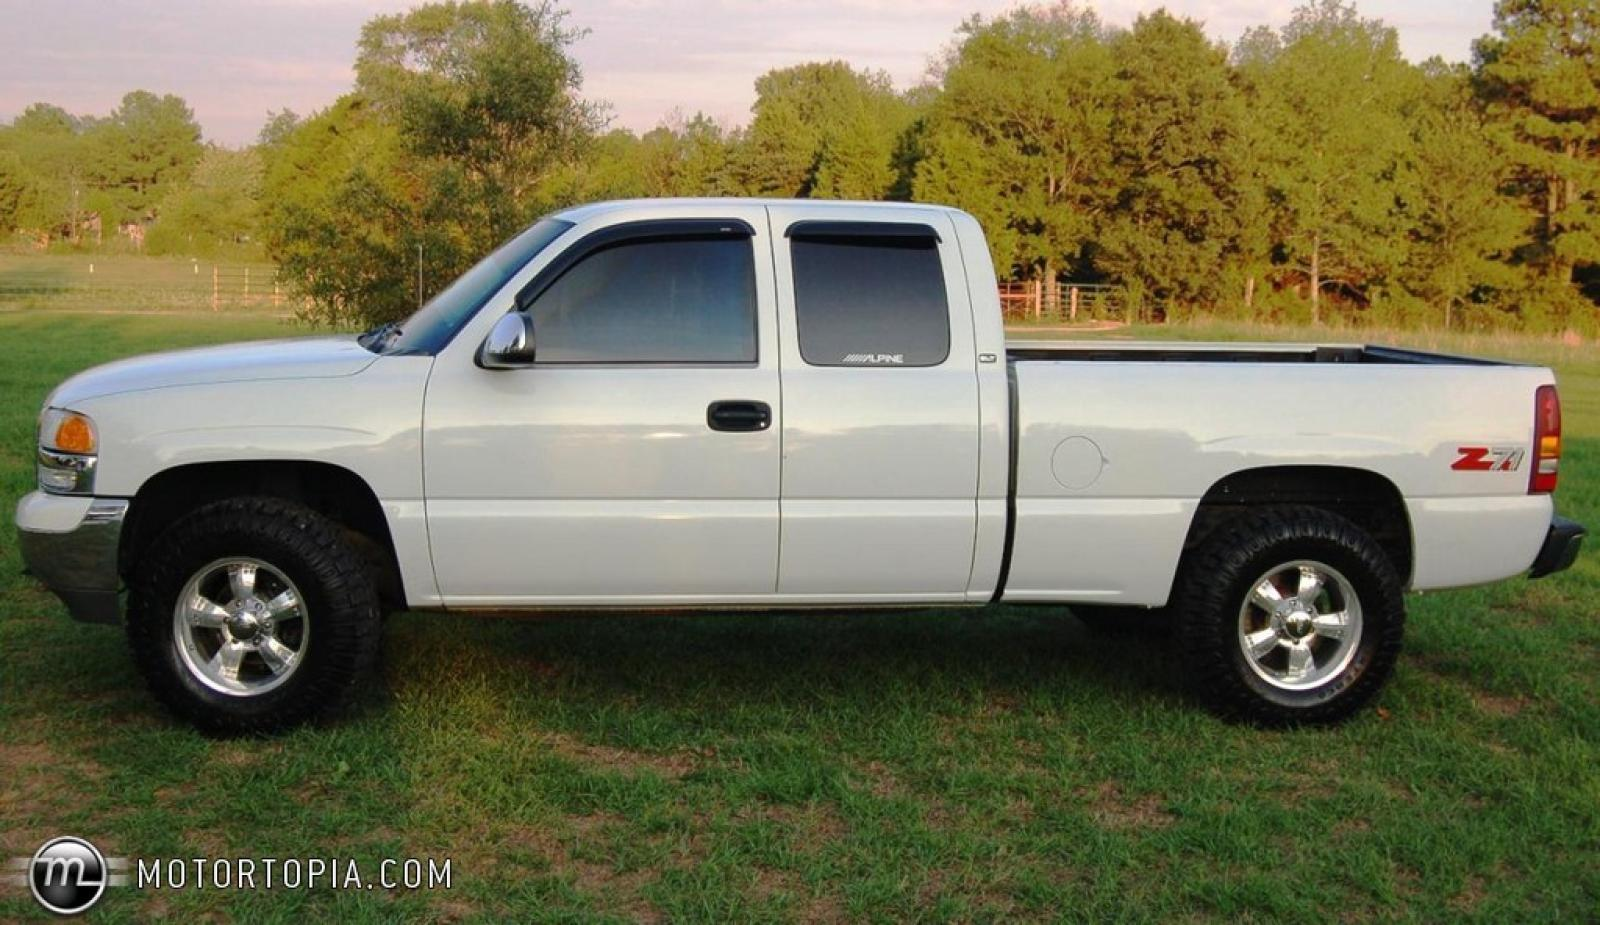 2000 Gmc Sierra 1500 Information And Photos Zombiedrive 1988 Wiring Diagram 1 800 1024 1280 1600 Origin